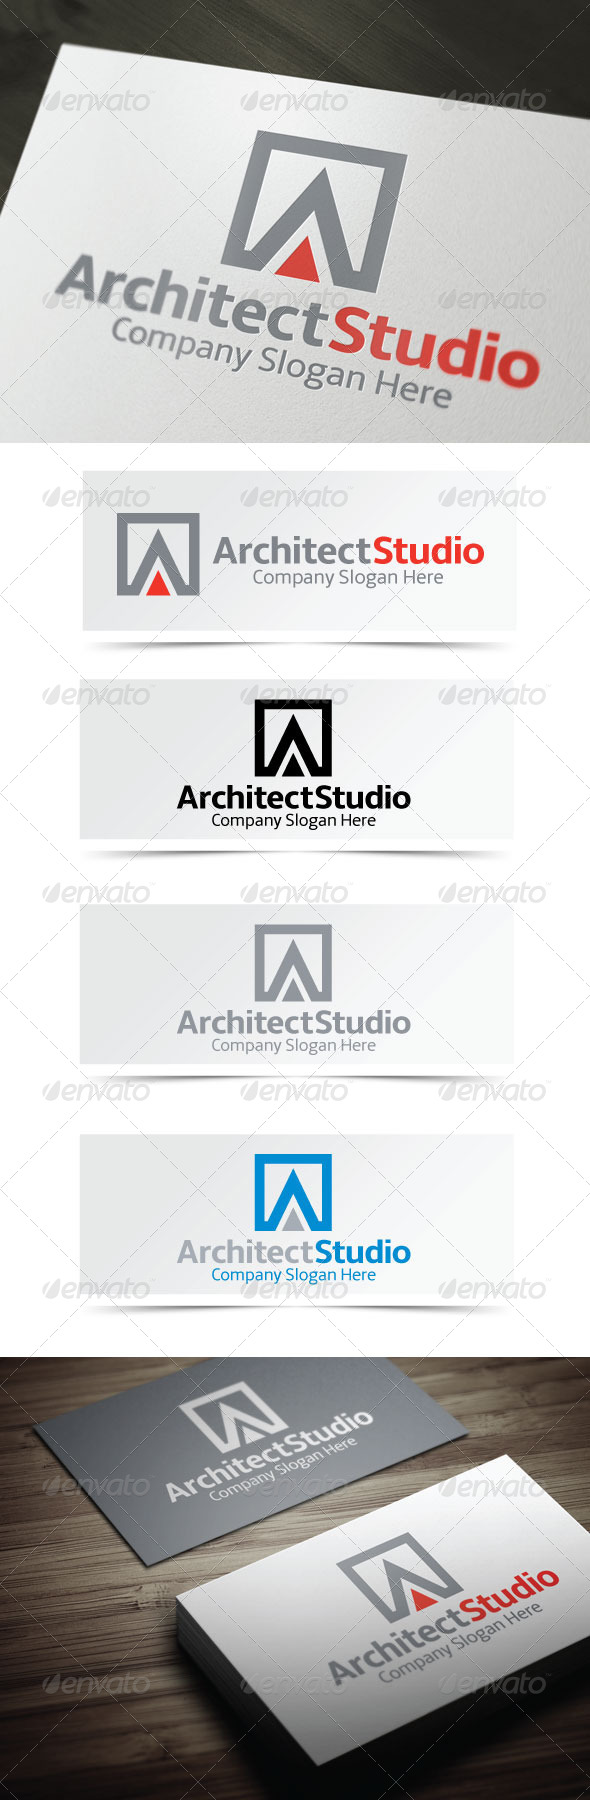 GraphicRiver Architect Studio 4079671